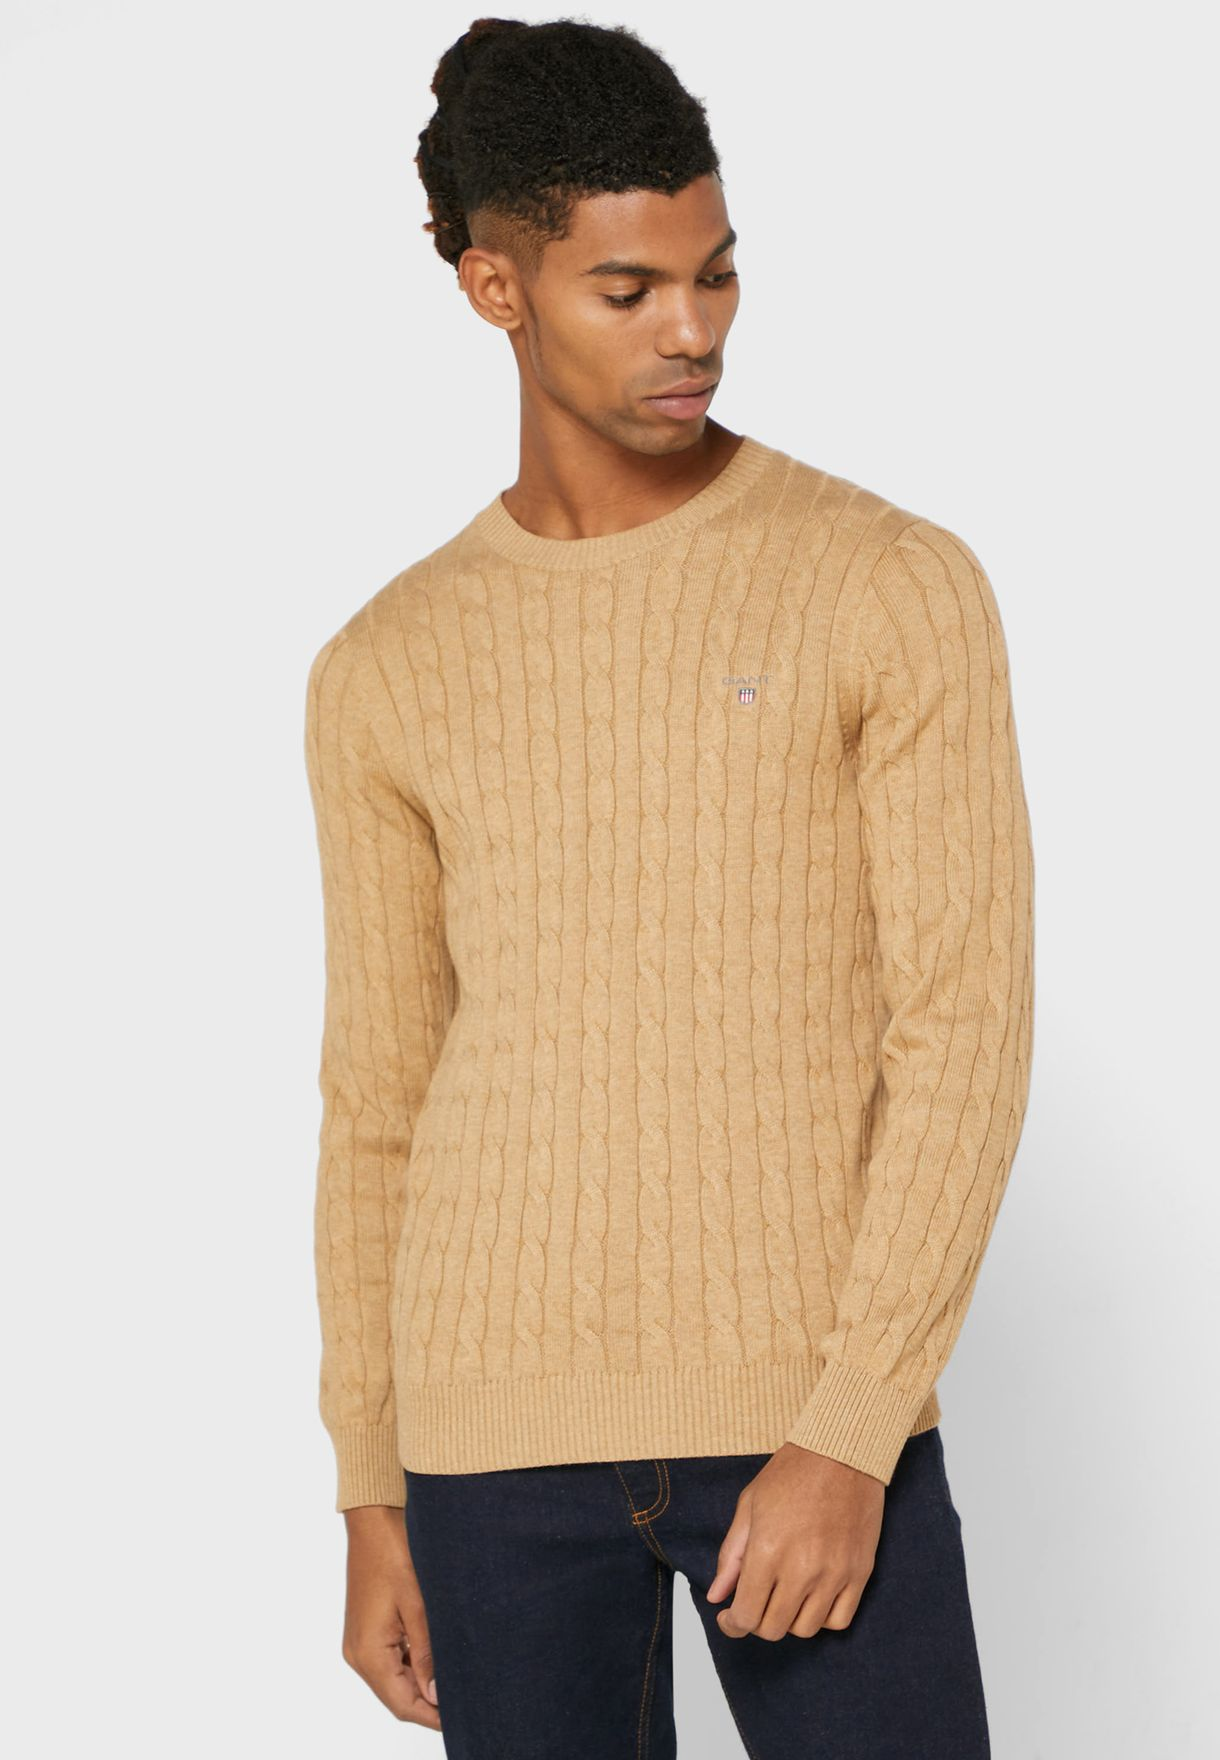 Buy Gant Brown Cable Knit Sweater For Men In Mena Worldwide 8050501 295